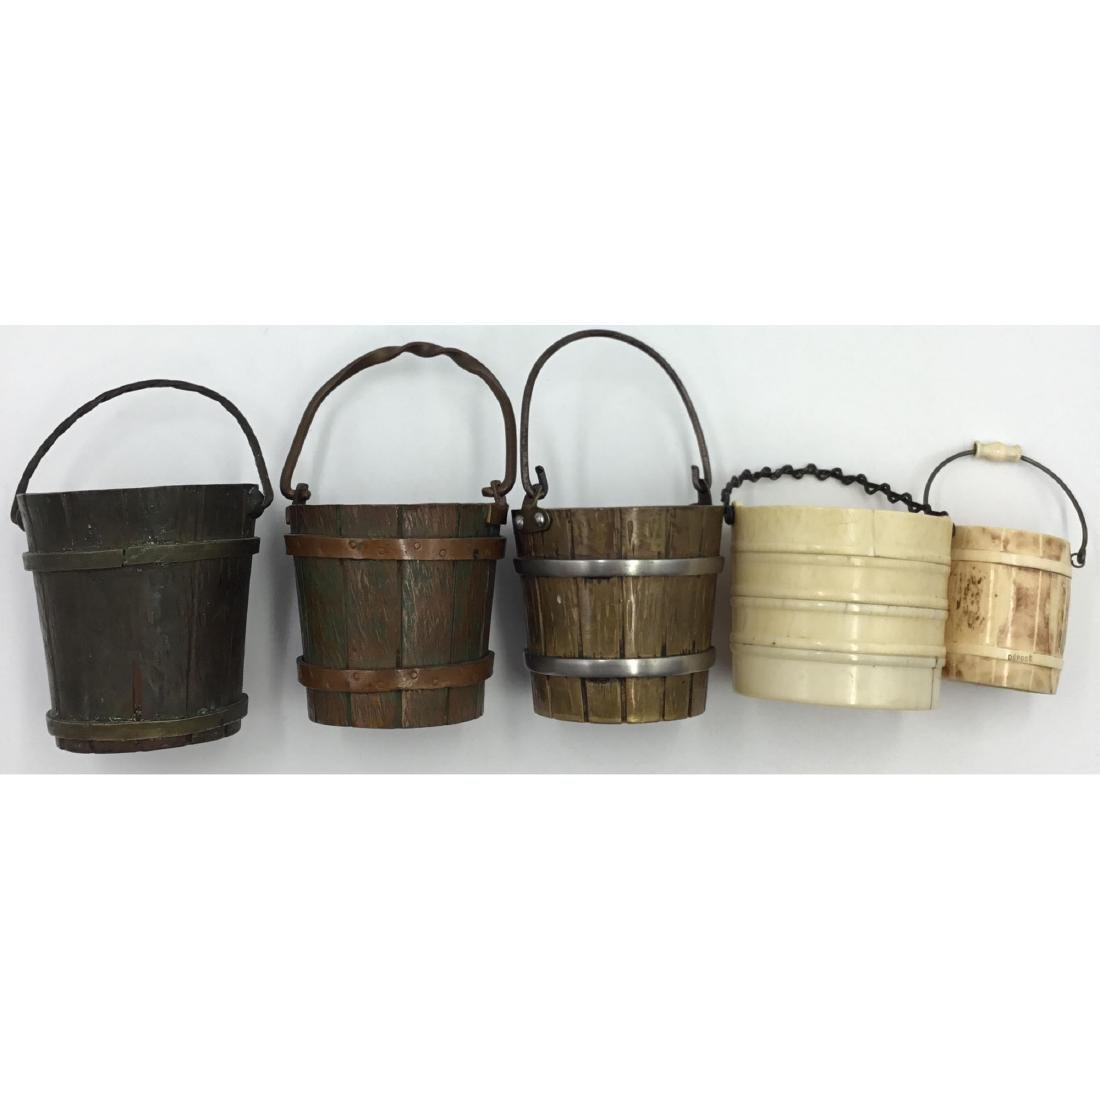 GROUP OF 5 ANTIQUE FRENCH MINIATURE BUCKETS - 5